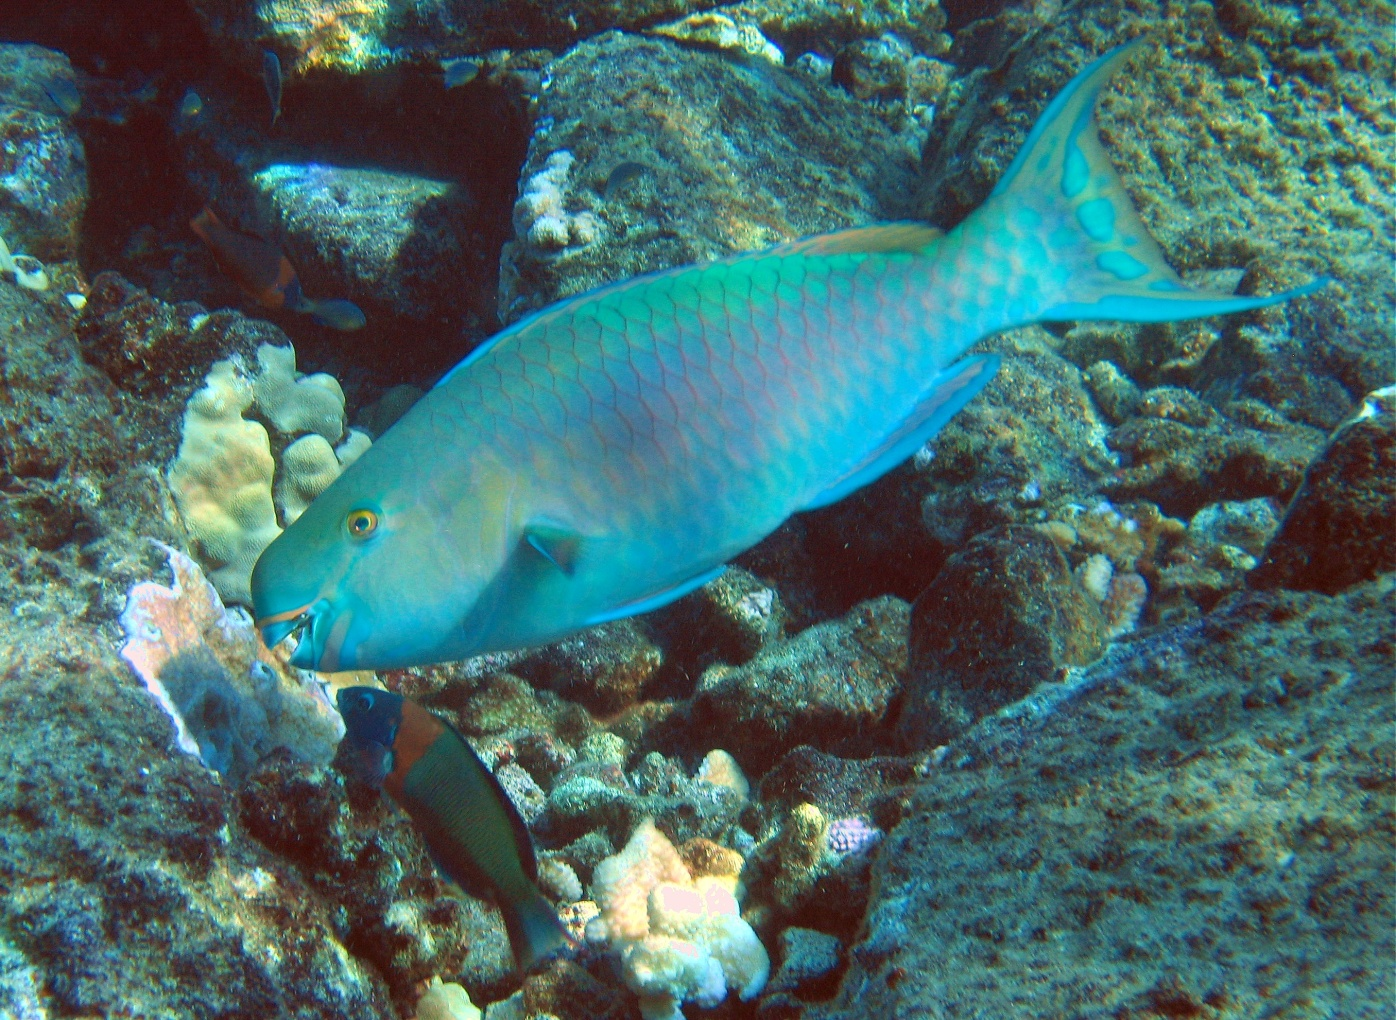 Interesting fact about a Parrotfish: most of the crystal white sand forming tropical beaches is former parrotfish poop: After digesting coral rock, it's excreted as sand.